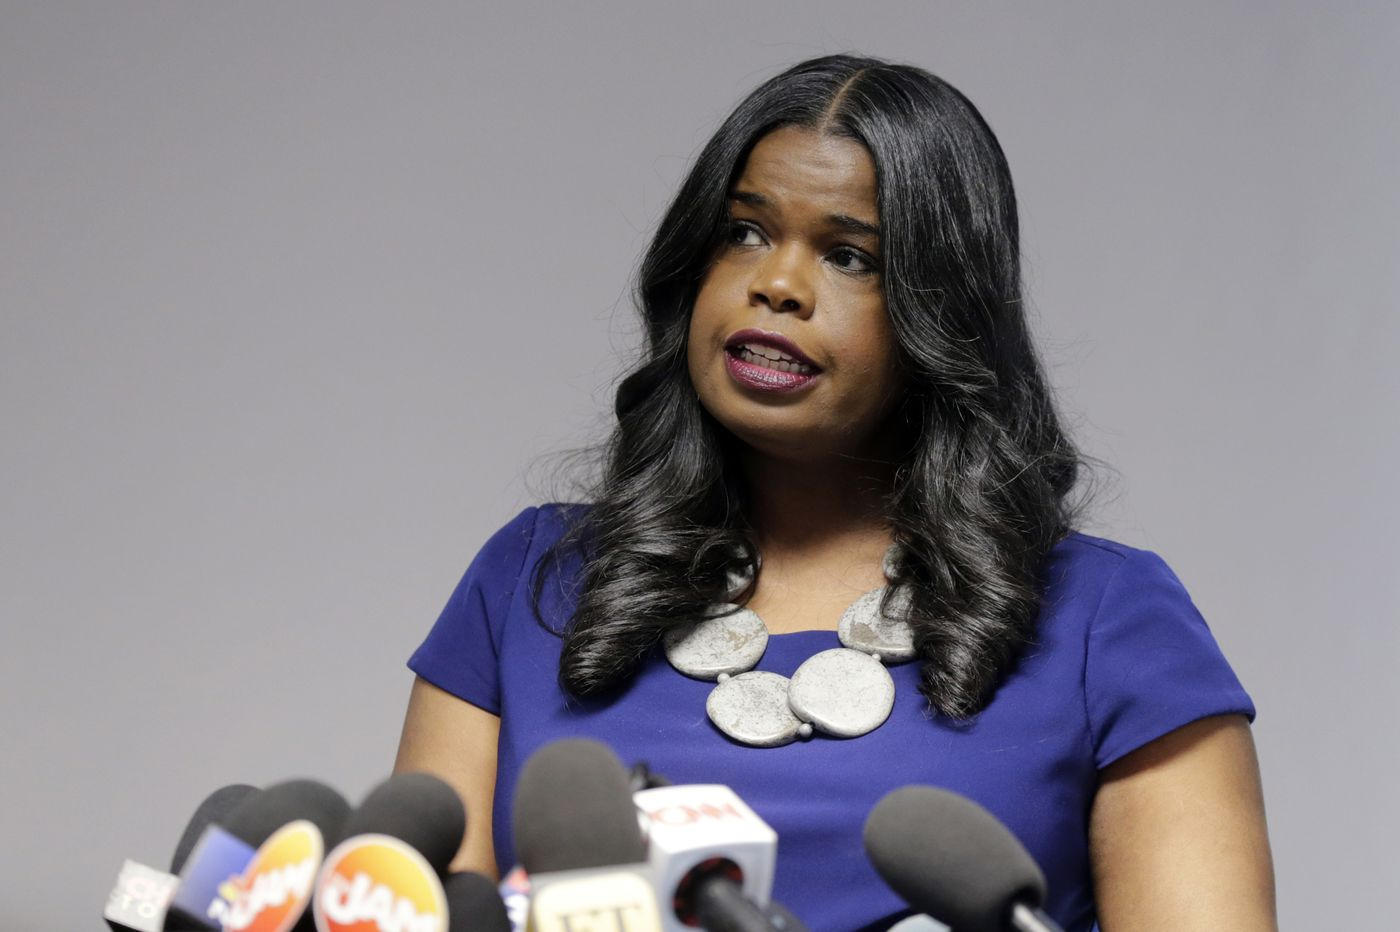 Philly can learn a lot about criminal justice reform and public safety from Chicago prosecutor Kim Foxx | Q&A